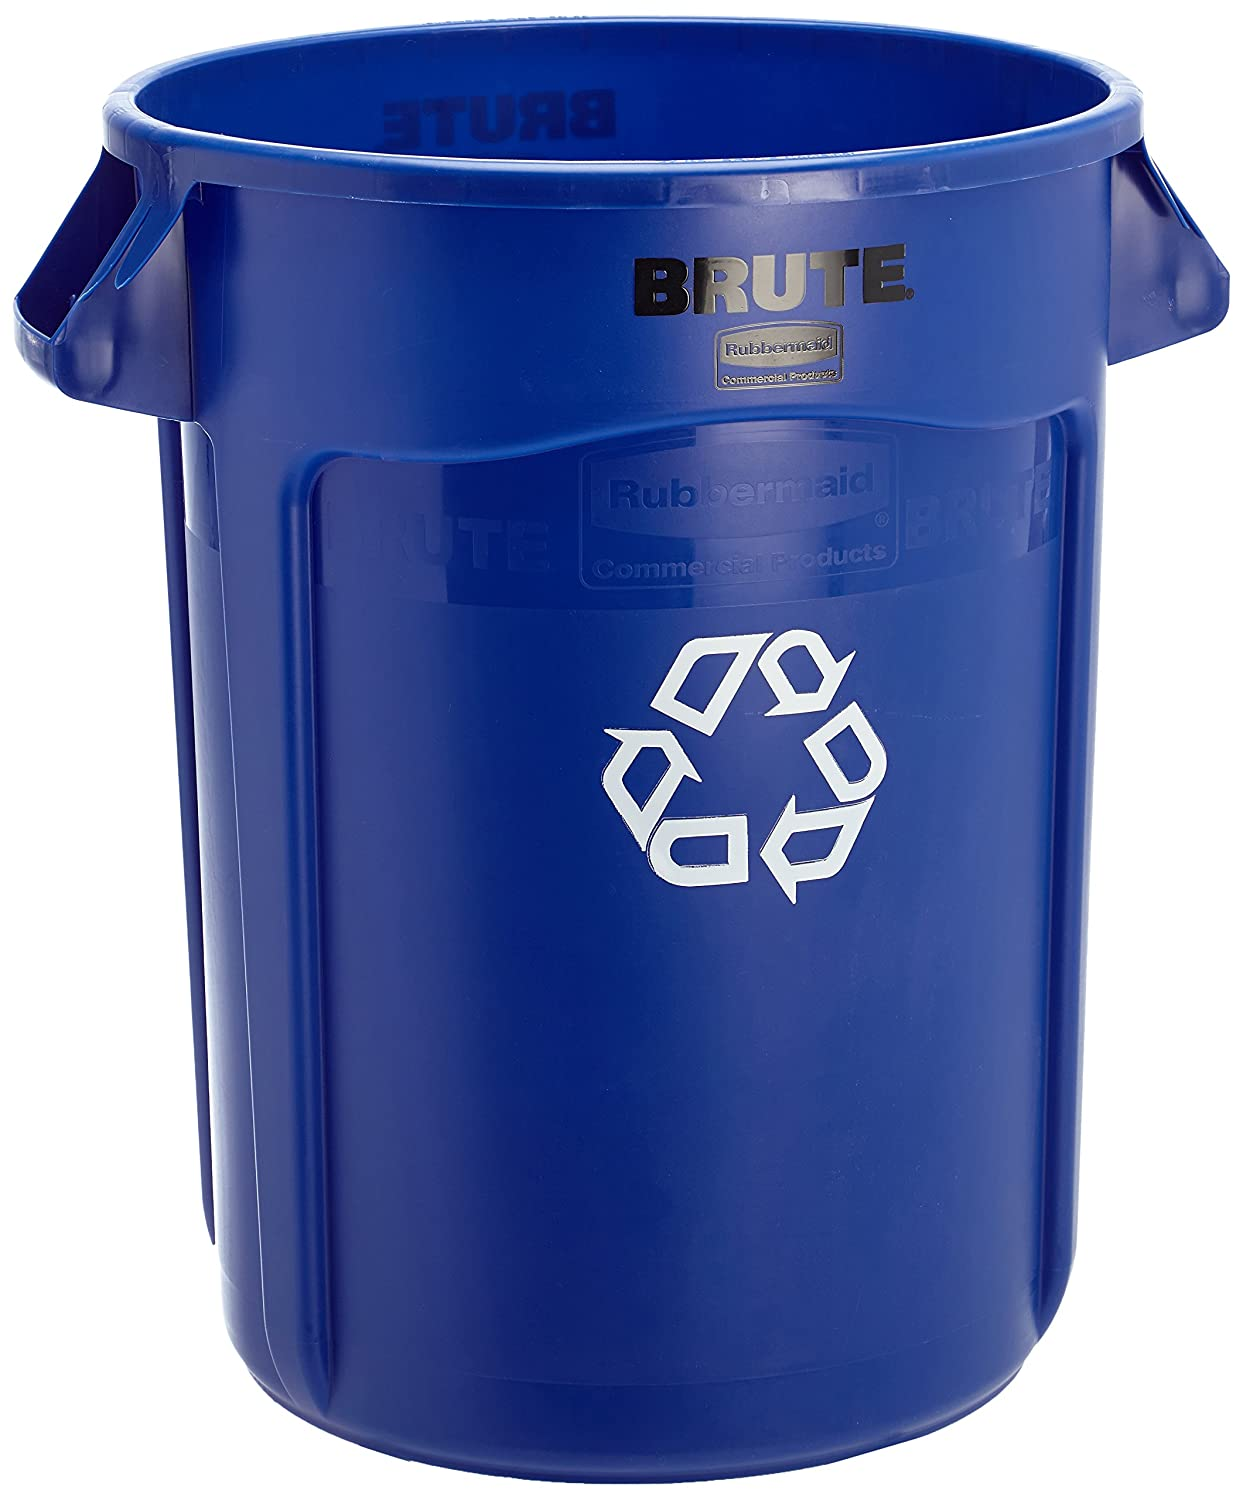 Rubbermaid Commercial Products FG263273BLUE Brute Recycling Container with Venting Channels, 32 gal, Blue